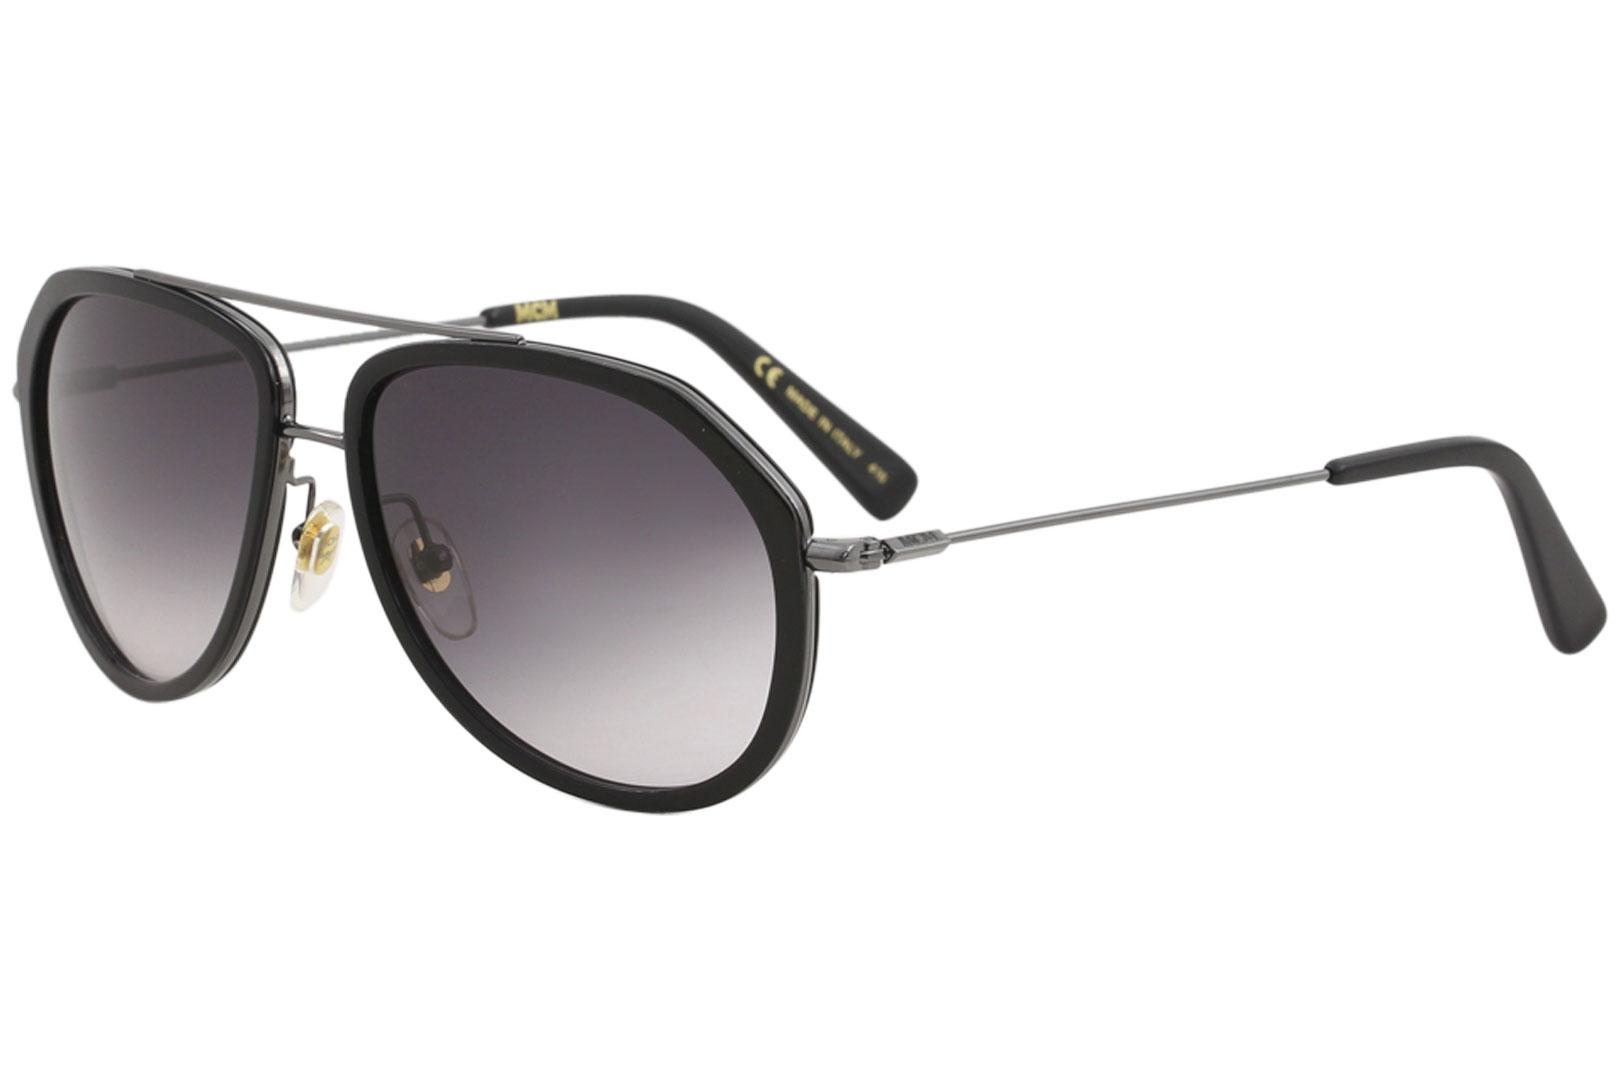 bff4af8d54c MCM Women s MCM613S MCM 613 S Fashion Pilot Sunglasses by MCM. Touch to zoom